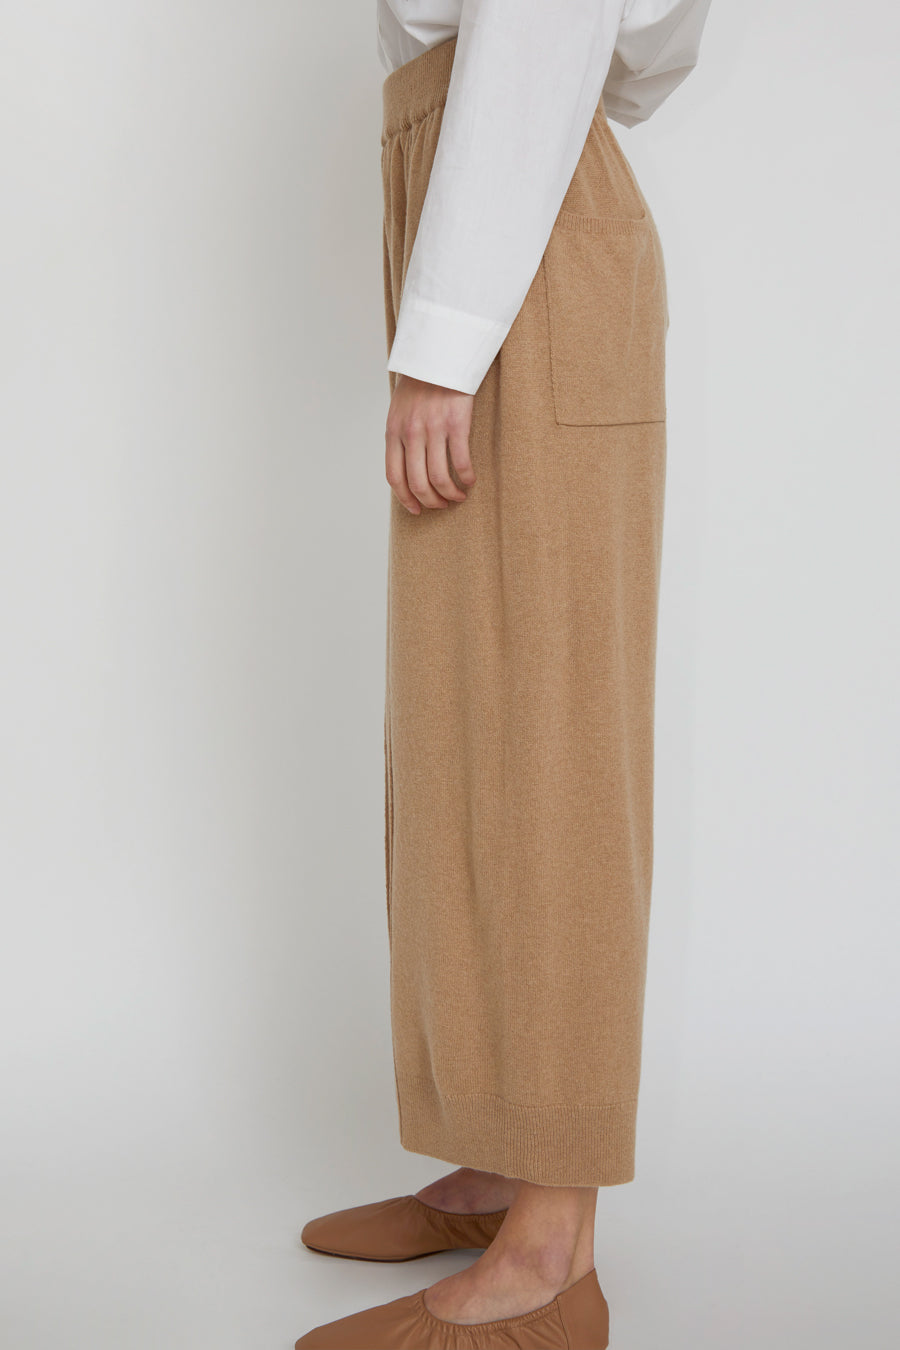 Monica Cordera Cashmere Knit Pants in Camel